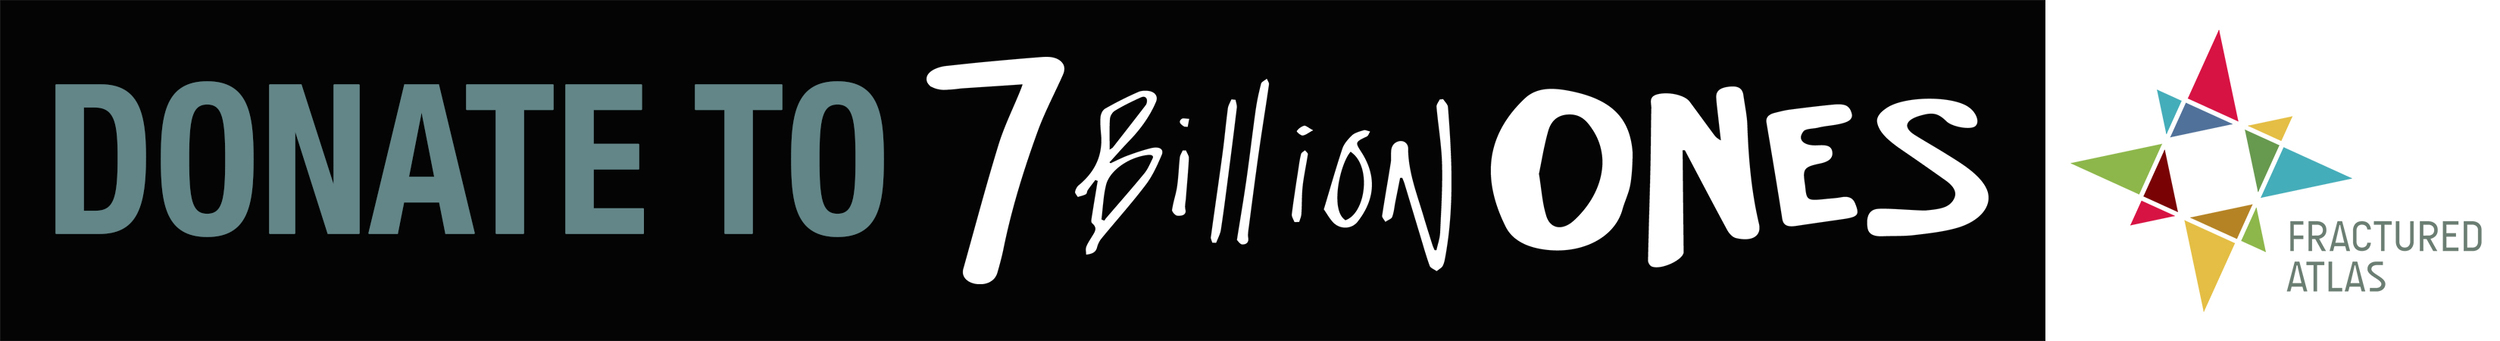 7 Billion Ones Donate Button